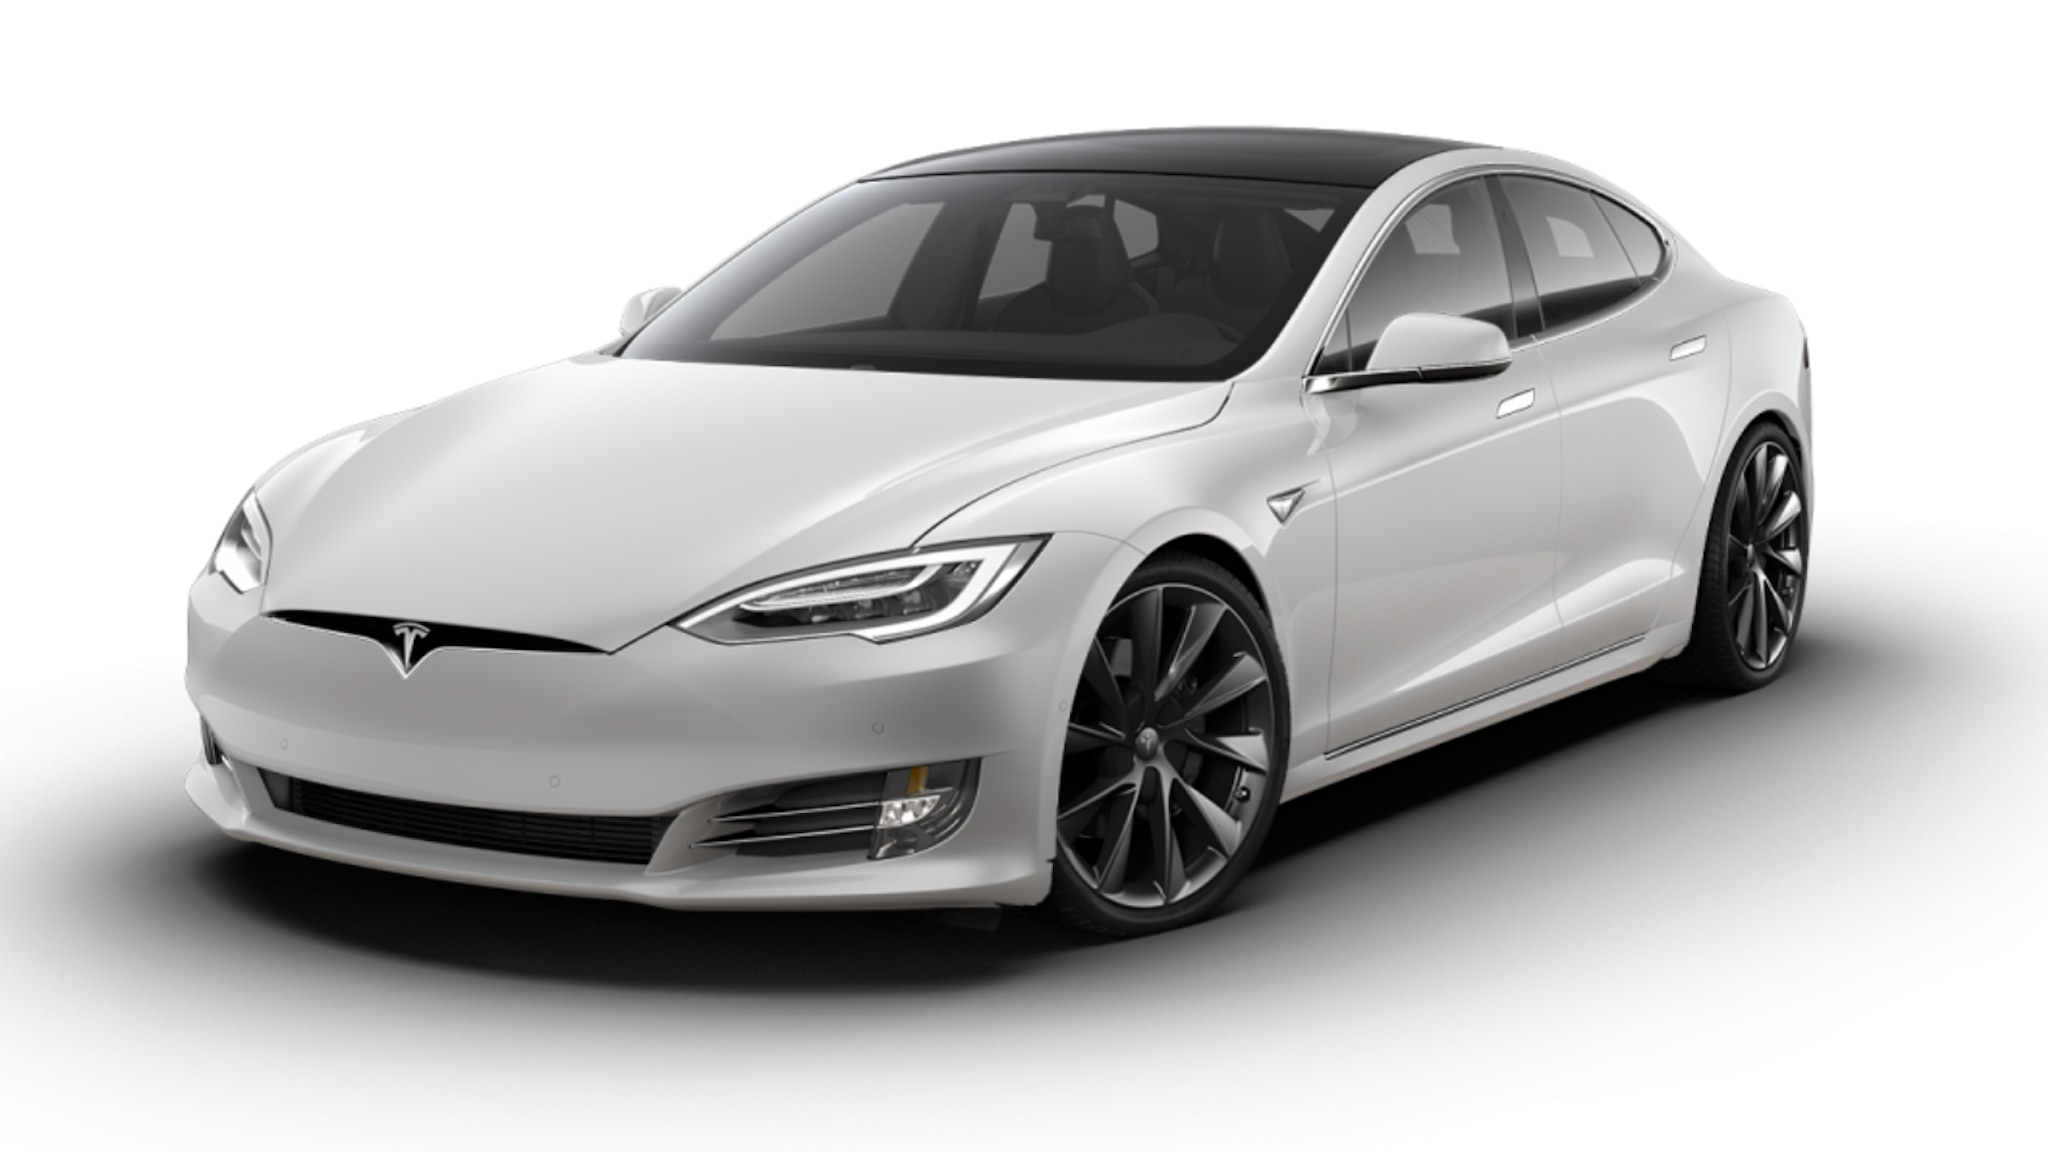 2022 Tesla Model S Plaid First Look Lord Helmet Approves 2048x1152